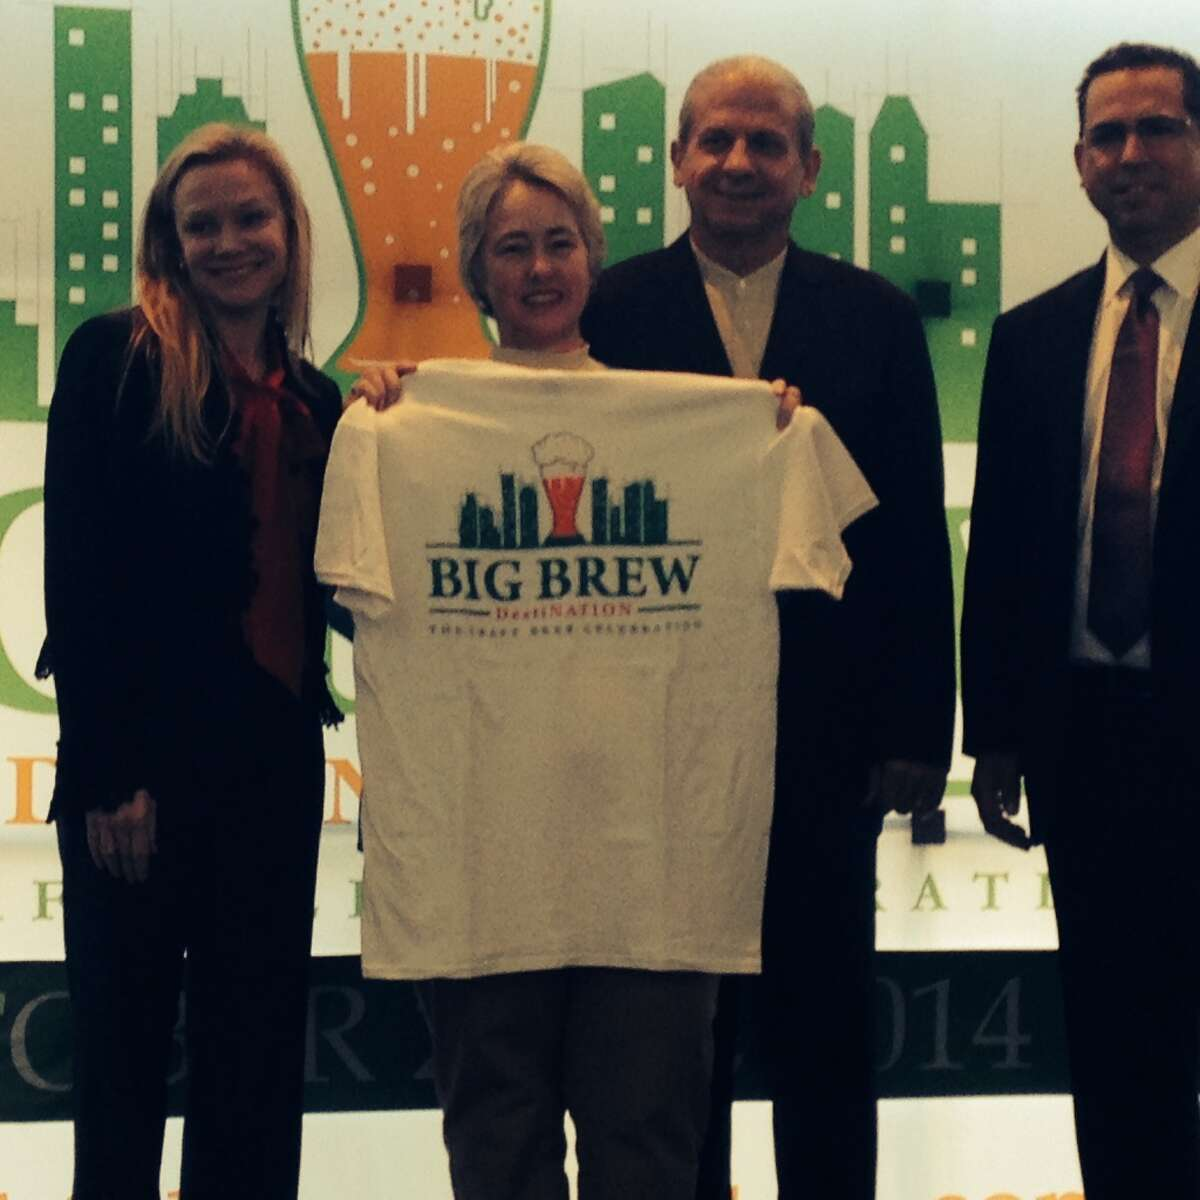 Mayor Annise Parker posed with a Big Brew T-shirt, flanked by Lisa Rydman of event sponsor Spec's and organizer Clifton McDerby of Food & Vine Time Productions.